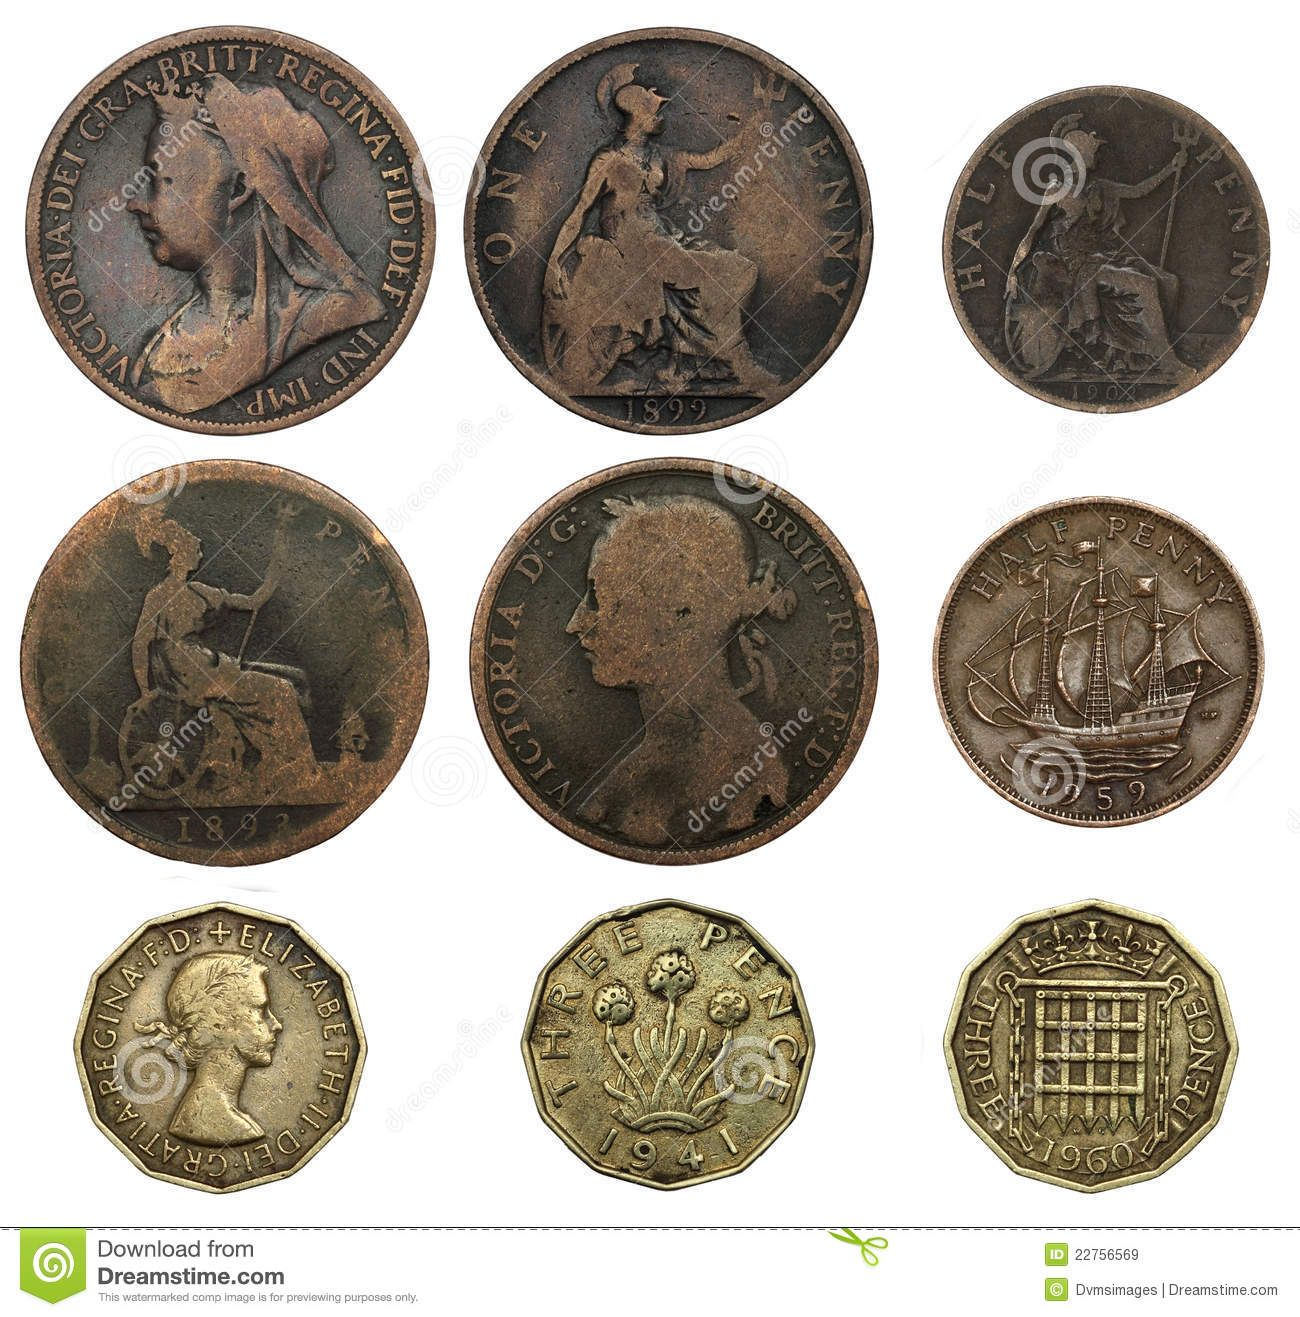 Old British Coins From Over 45 Million High Quality Stock Photos Images Vectors Sign Up For Free Today Image 22756569